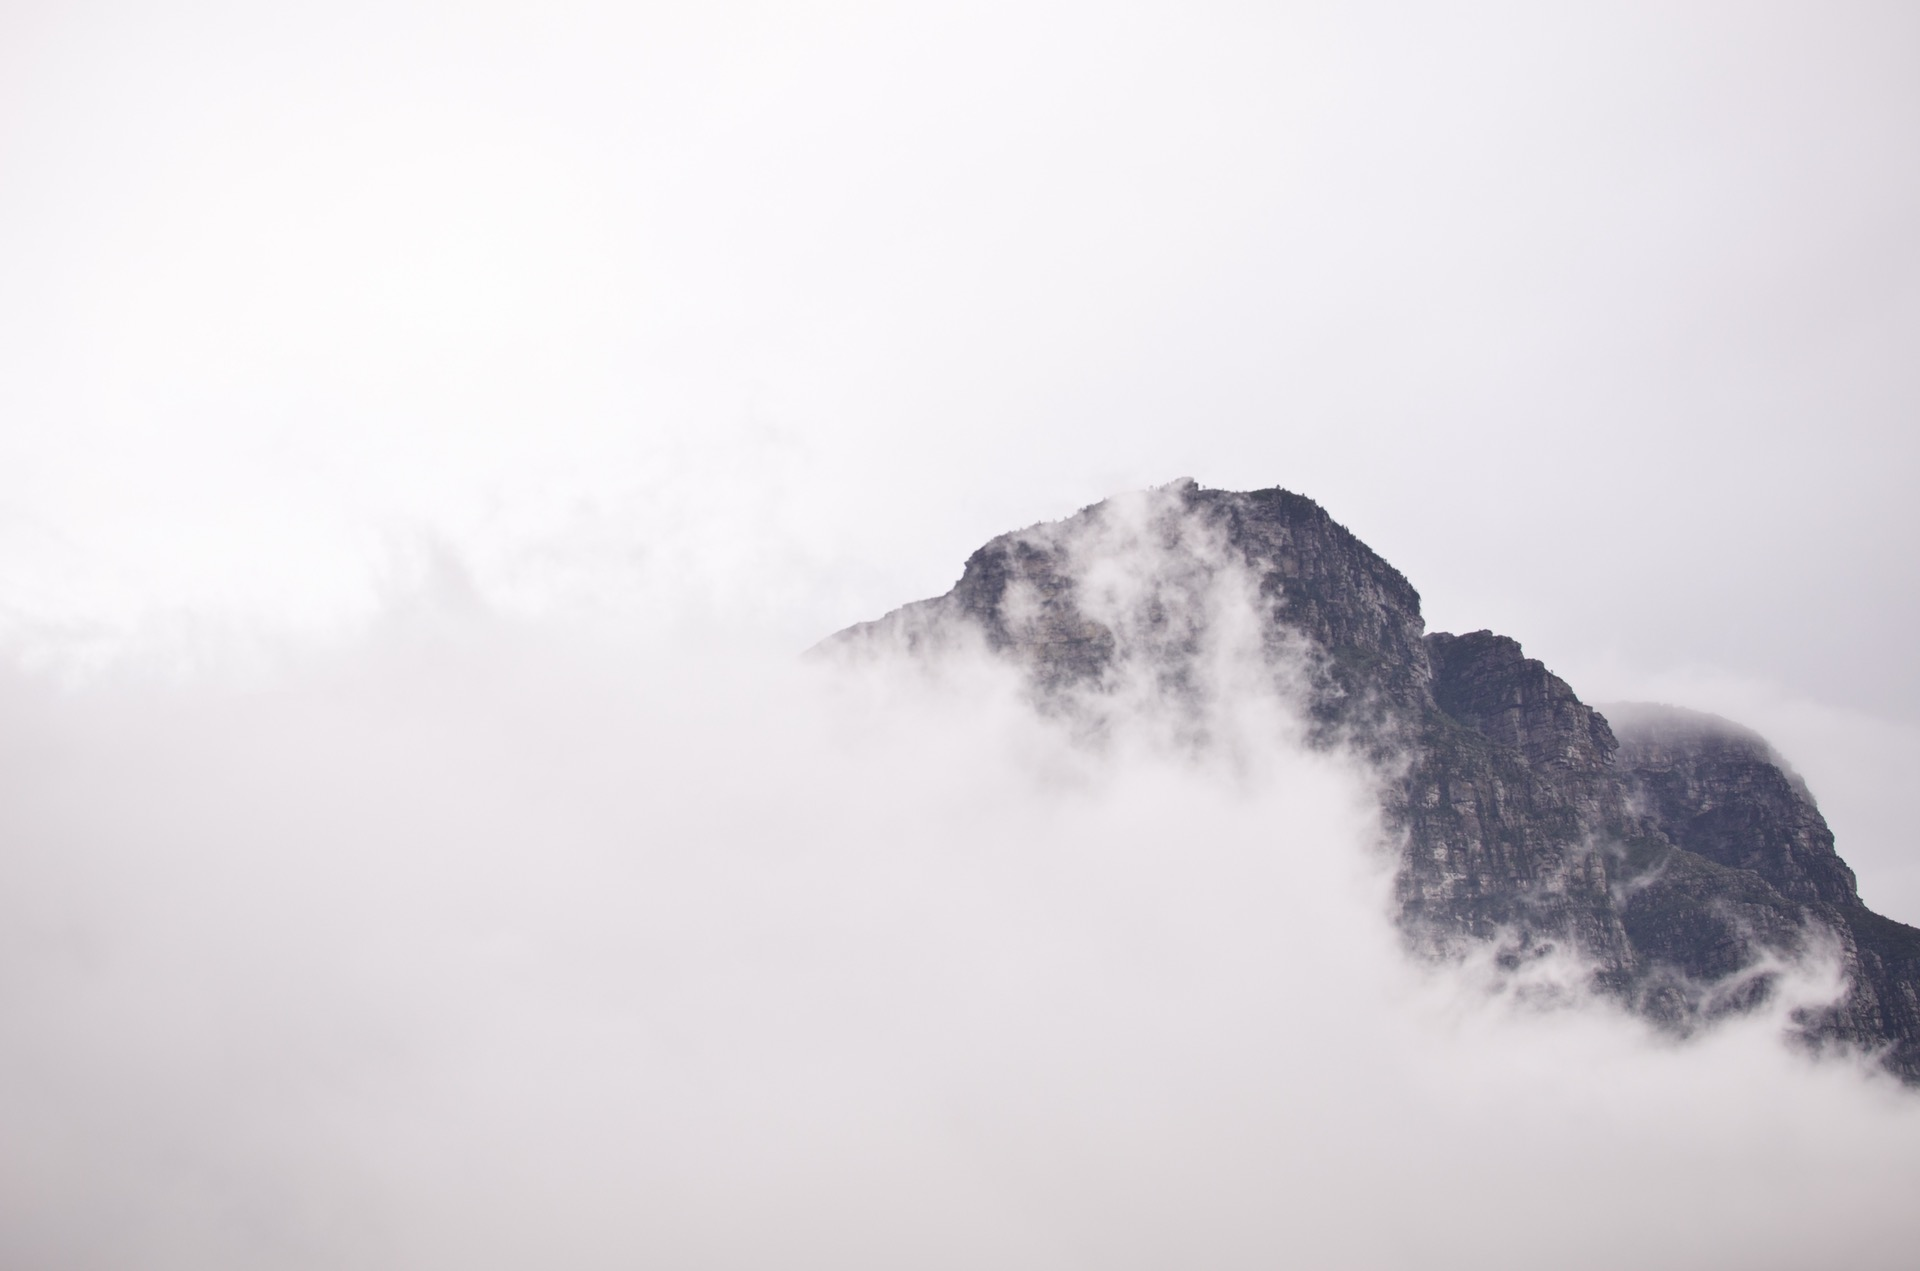 Cloudy mountain photo